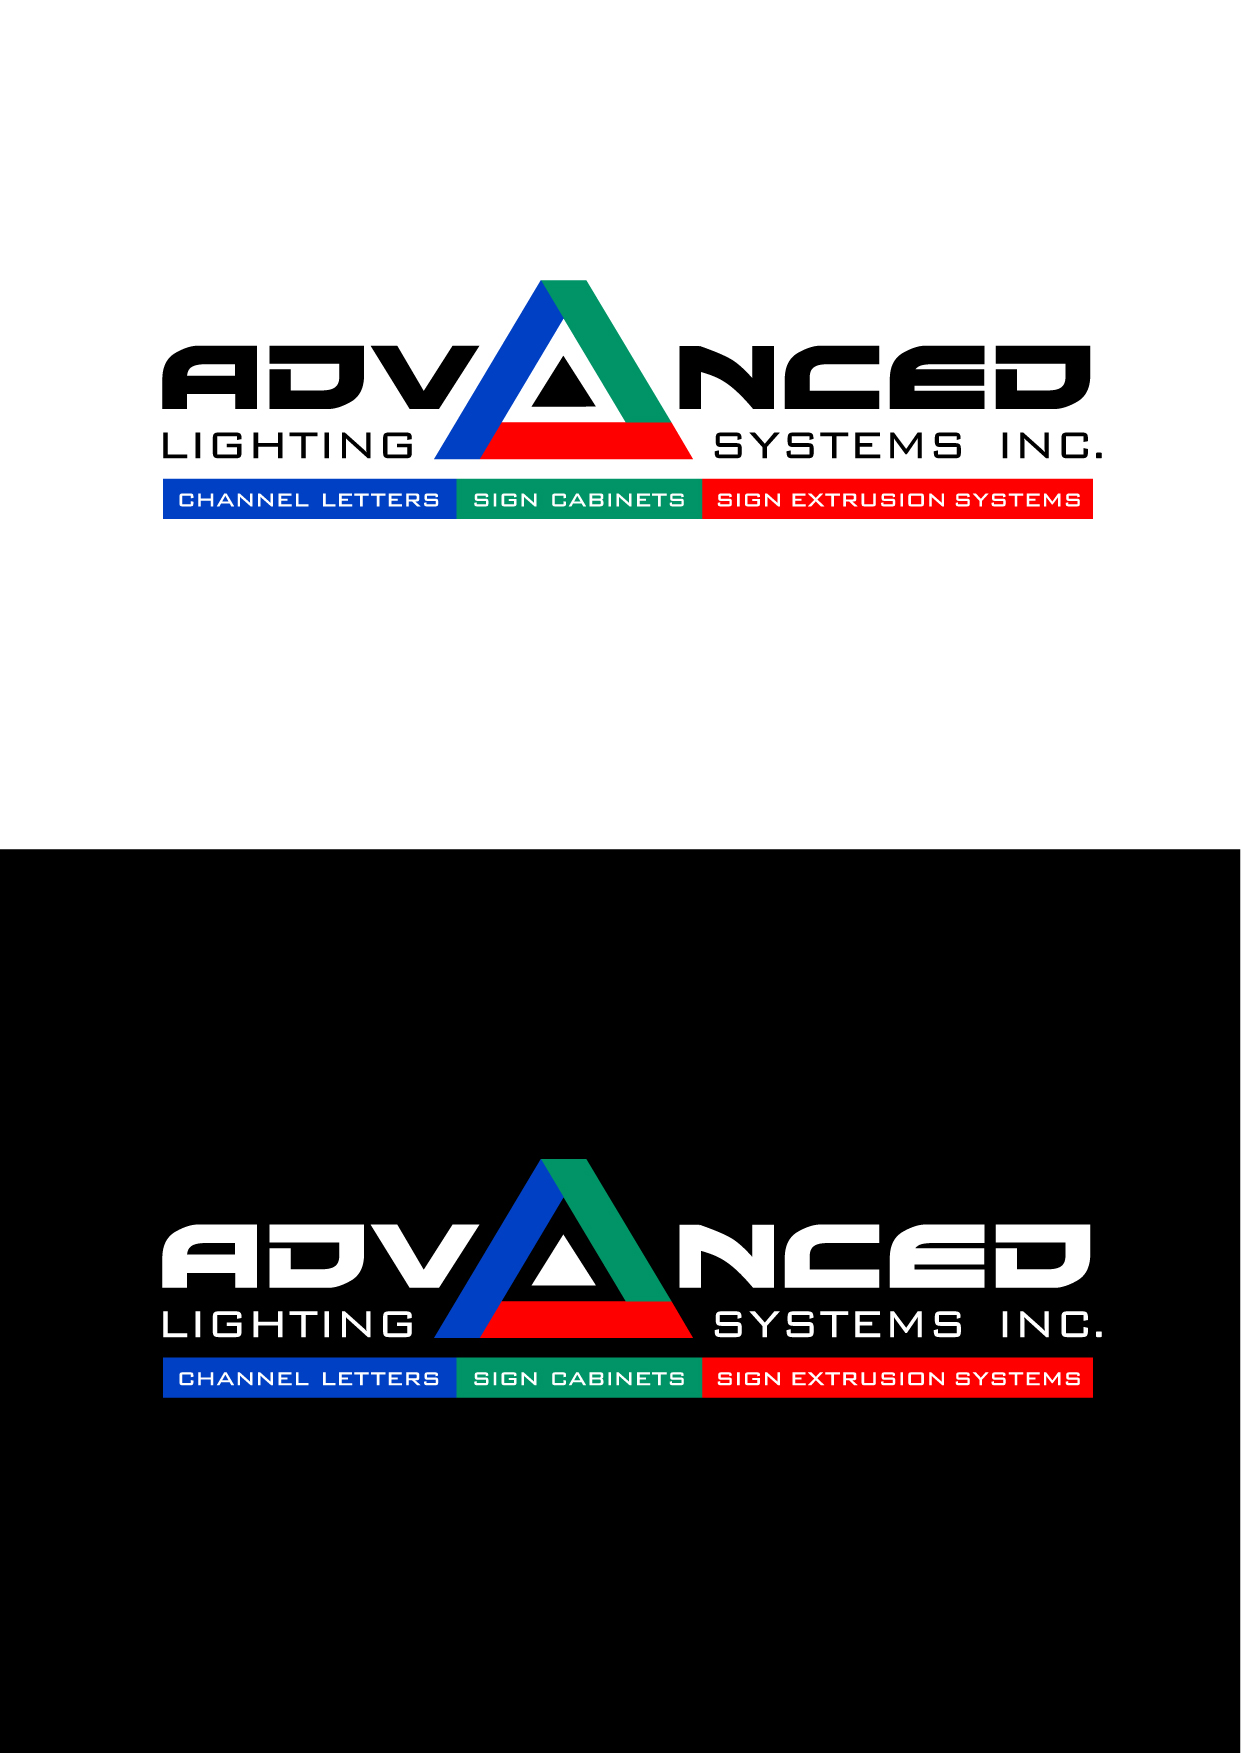 Logo Design by Wilfredo Mendoza - Entry No. 139 in the Logo Design Contest New Logo Design Needed for  Company Advanced Lighting Systems Inc..